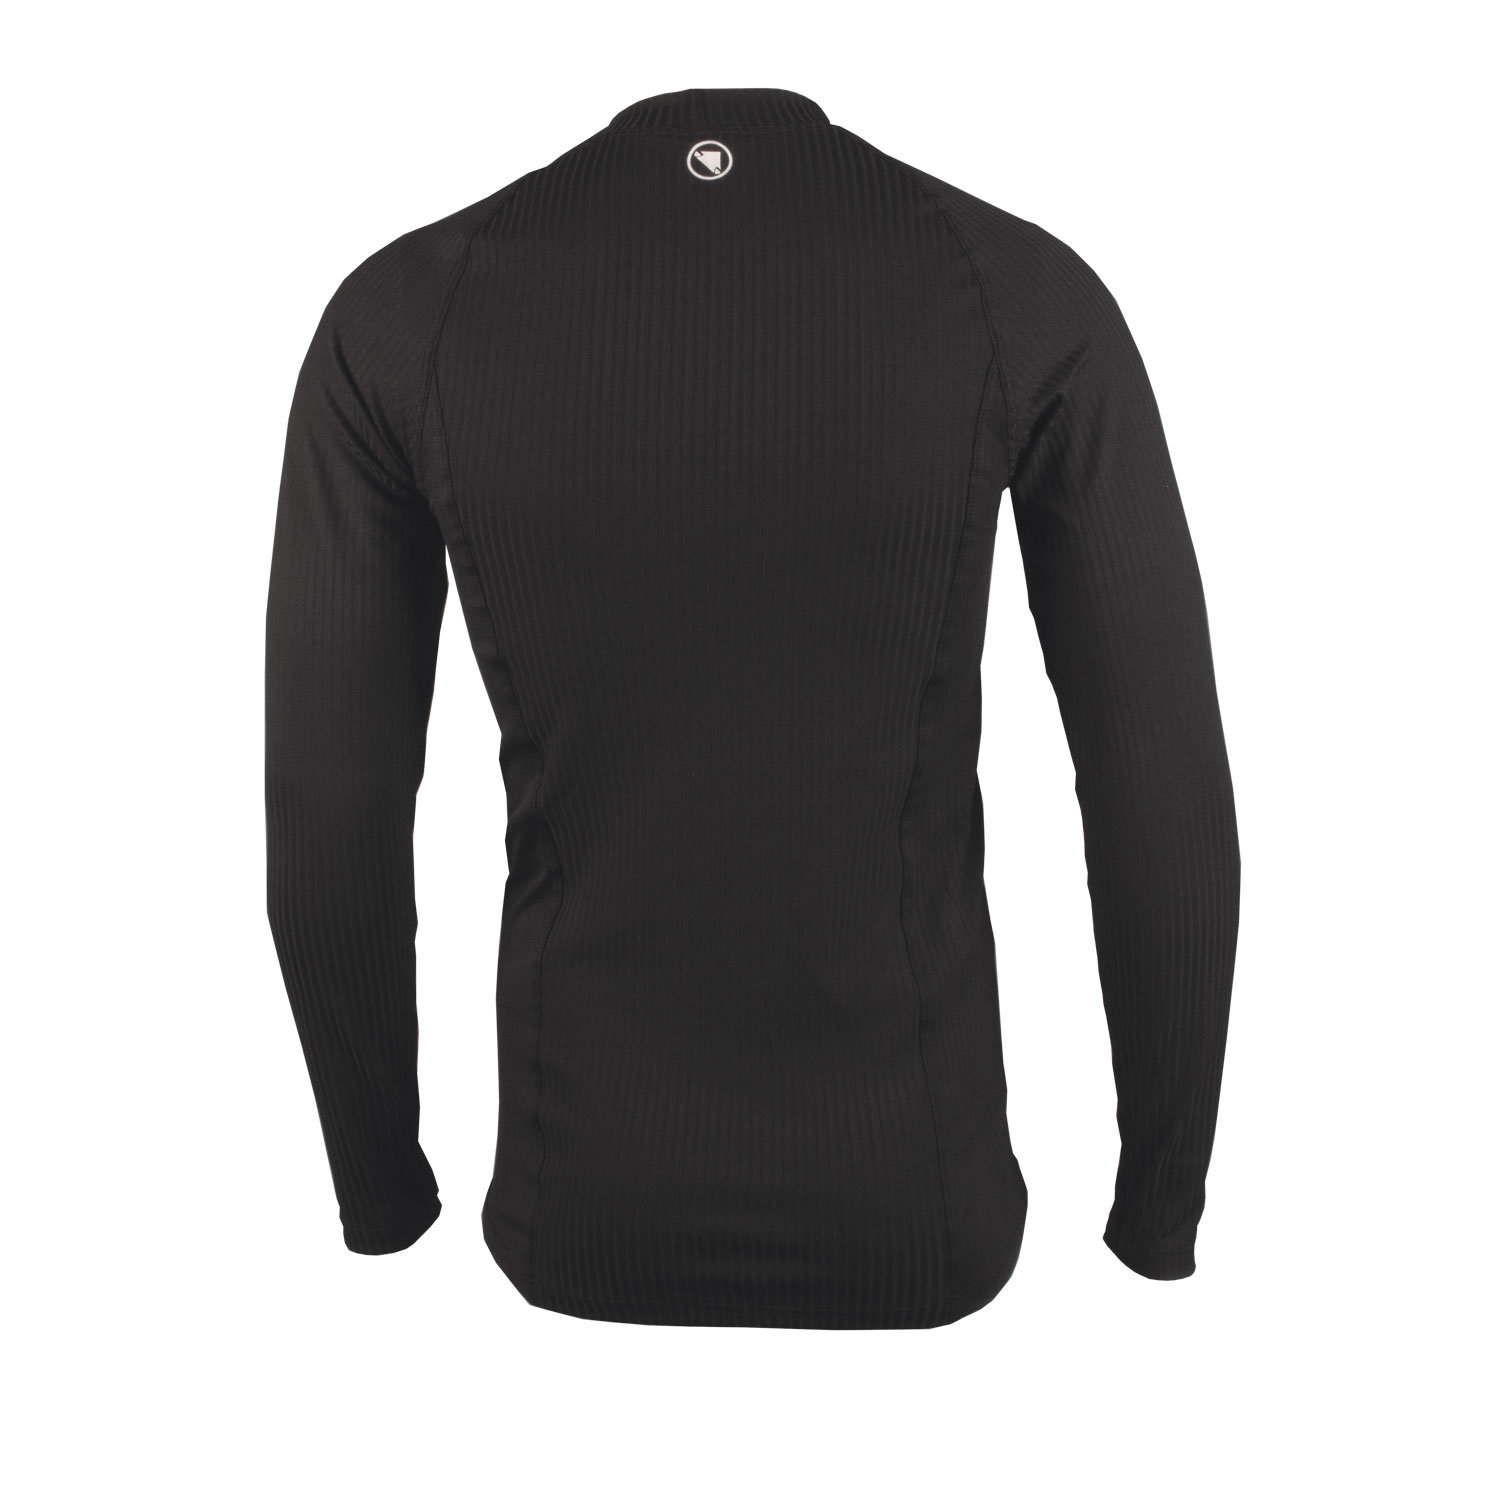 Transrib L/S Baselayer back